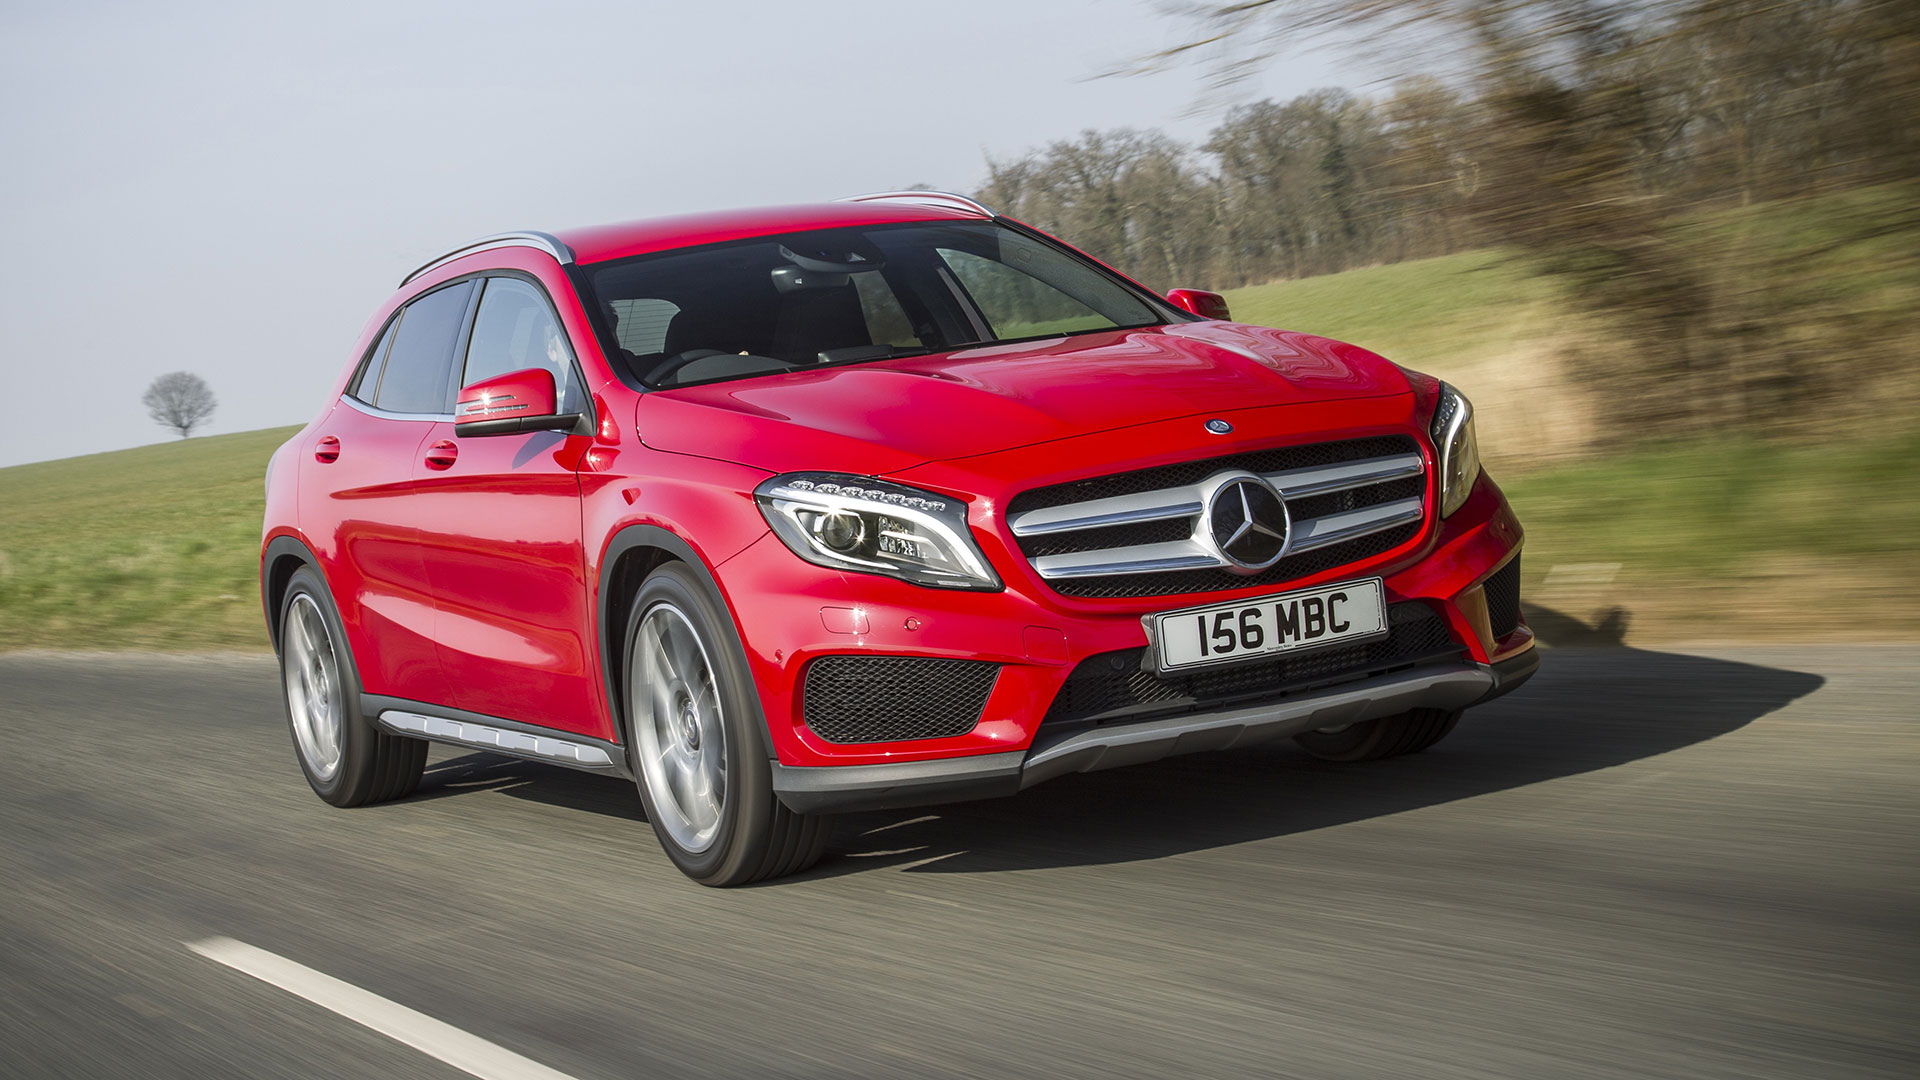 Used mercedes benz gla class cars for sale on auto trader uk for Used cars for sale mercedes benz